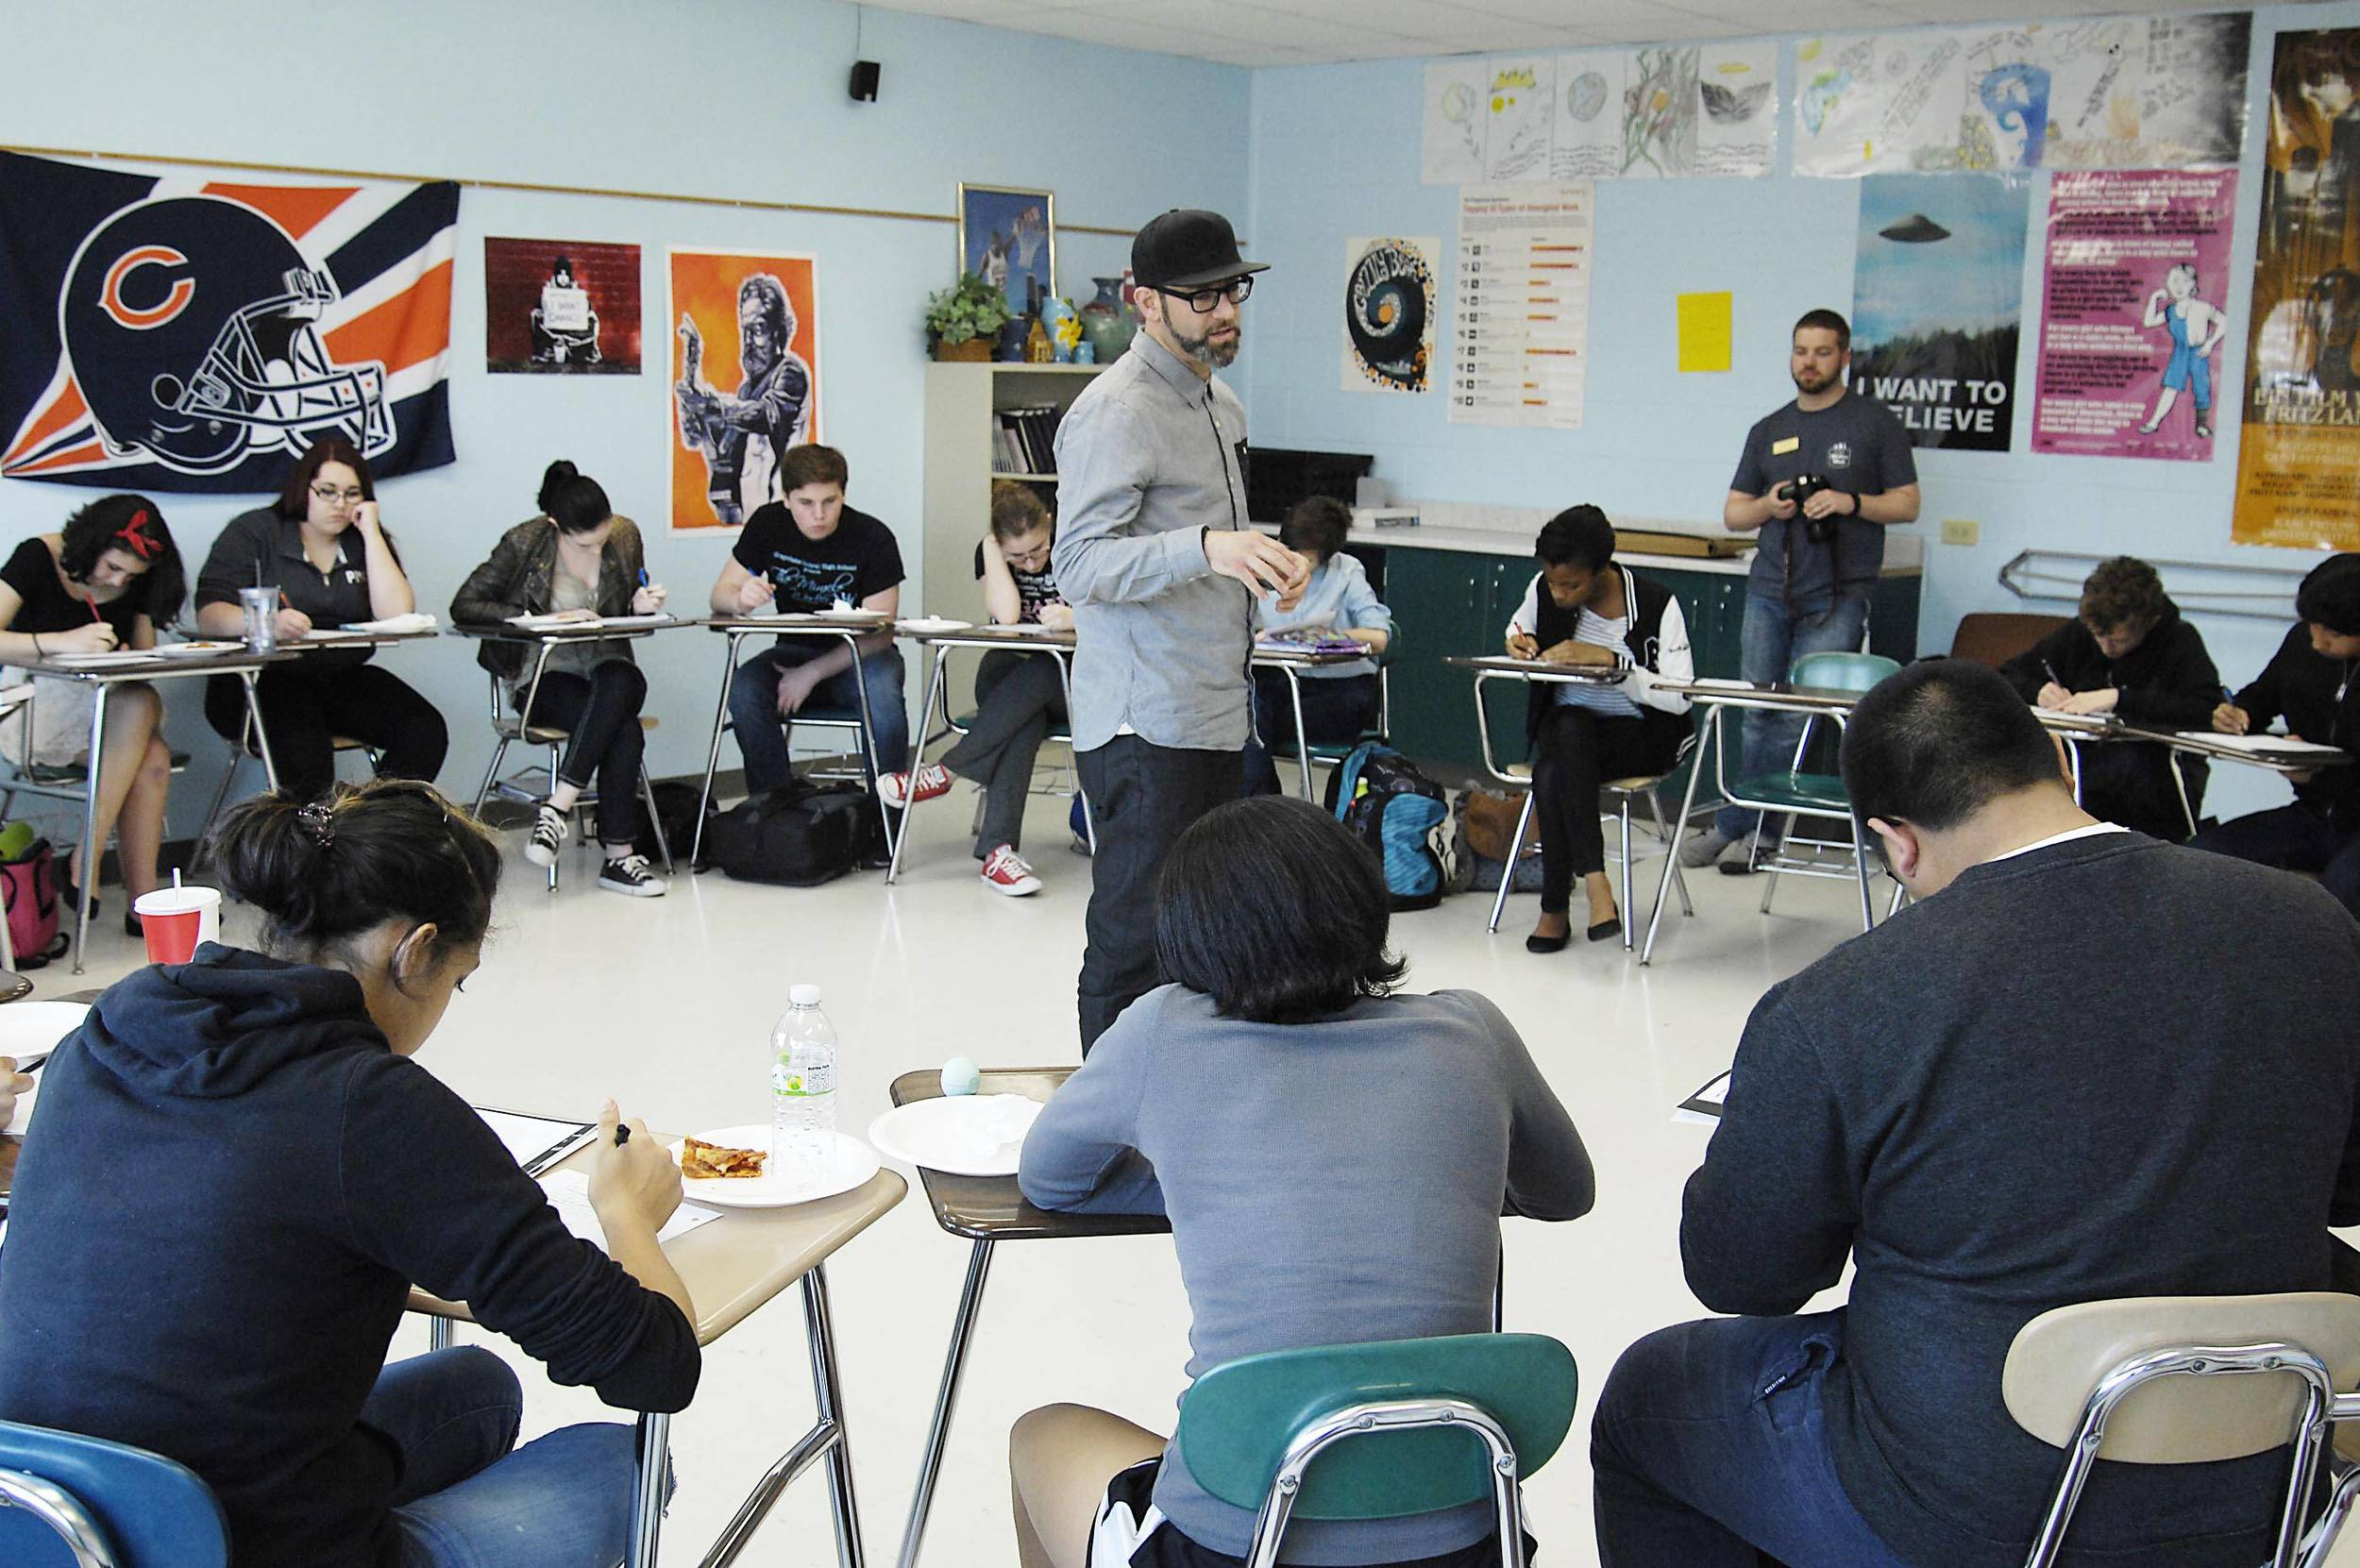 Poet Kevin Coval of Young Chicago Authors facilitates a classroom workshop at GCHS Writers Week 2015. Photo by John Starks/Daily Herald. Used with permission.